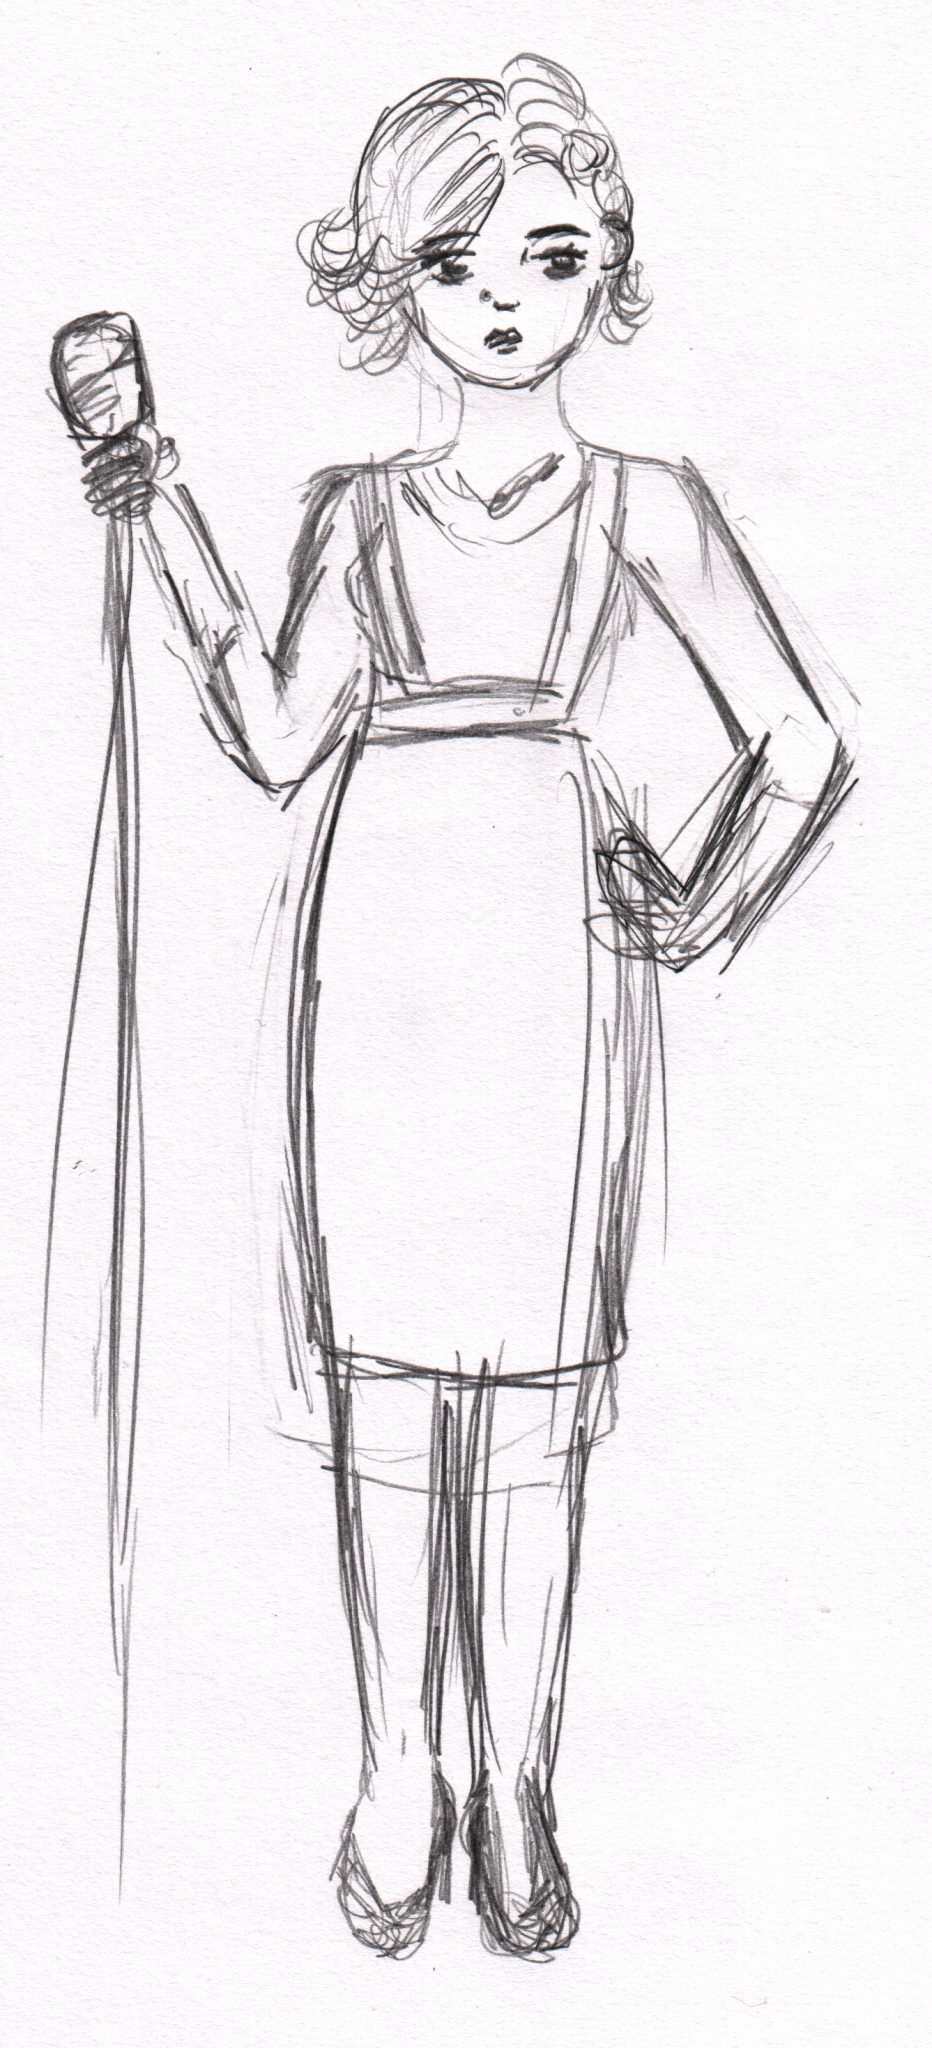 A sketch of one of the performers at Dr Sketchy's Christams, the singer stands next to her microphone, she wears a tartan pinafore.